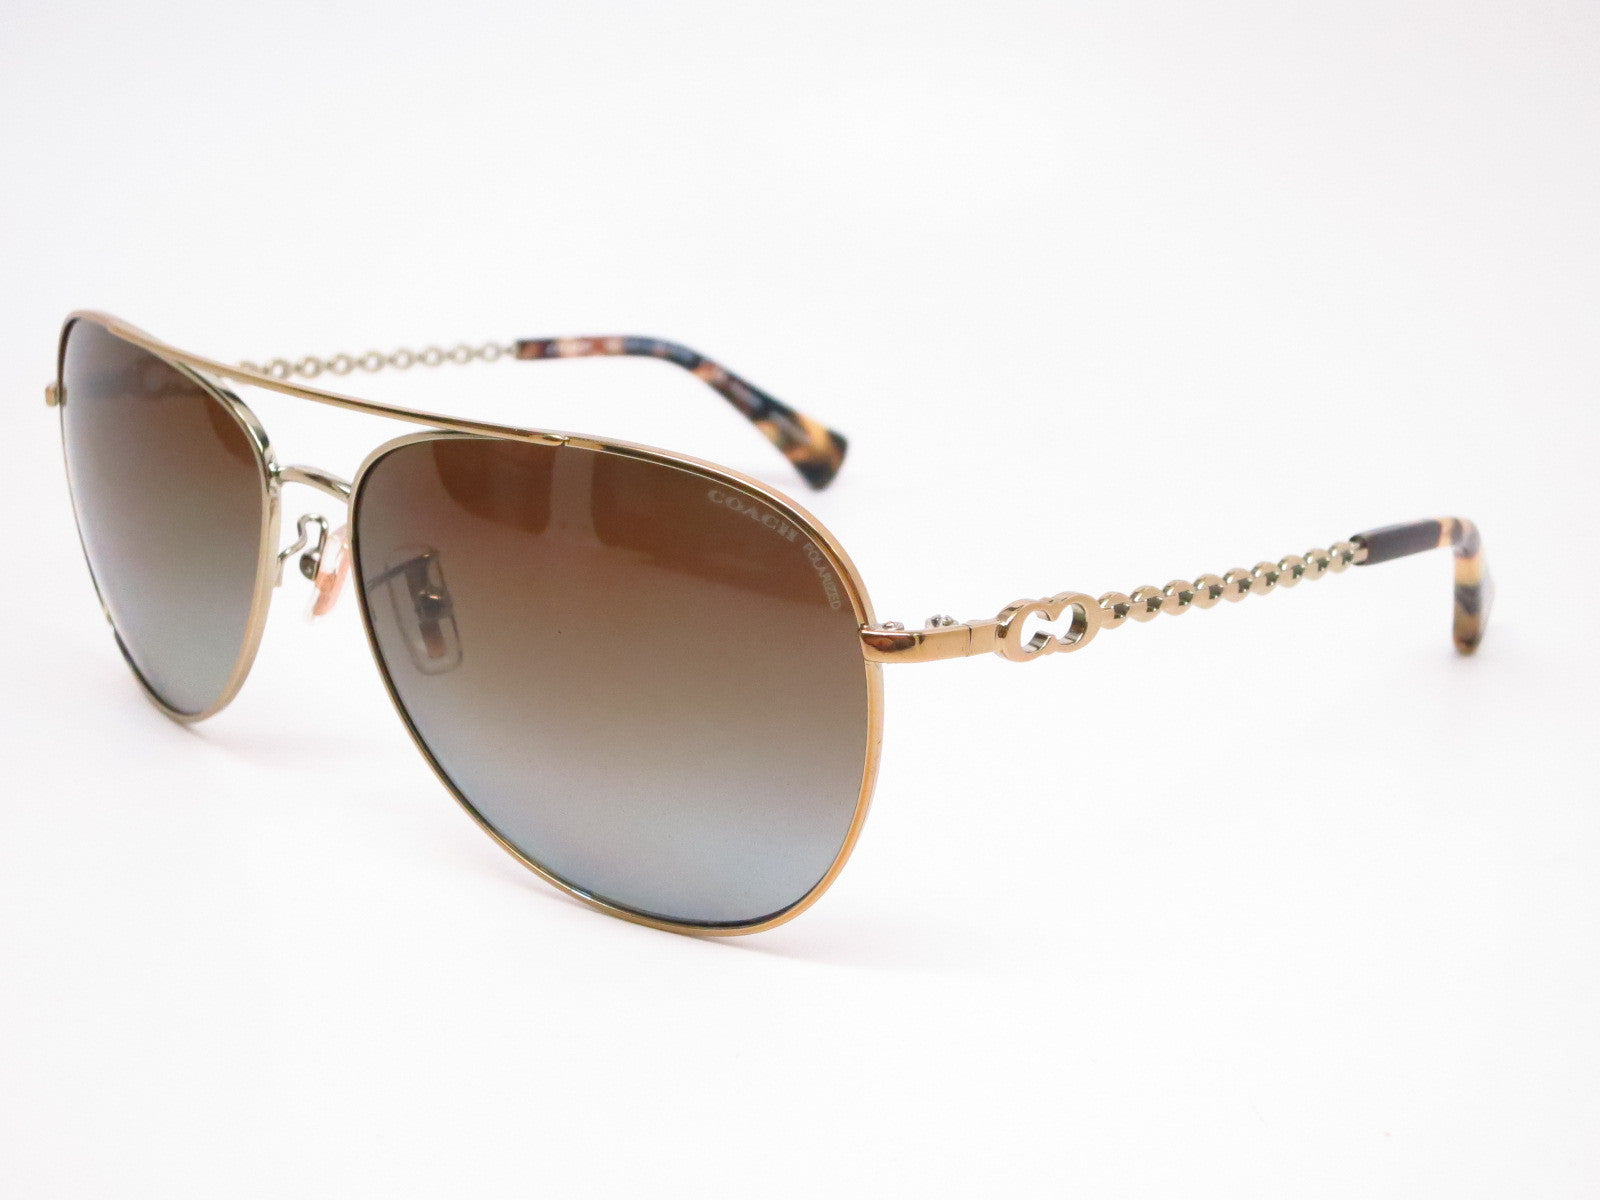 81d653cf16 Coach HC 7045 9190 T5 Bree Gold Dark Vintage Tortoise Polarized Sunglasses  - Eye